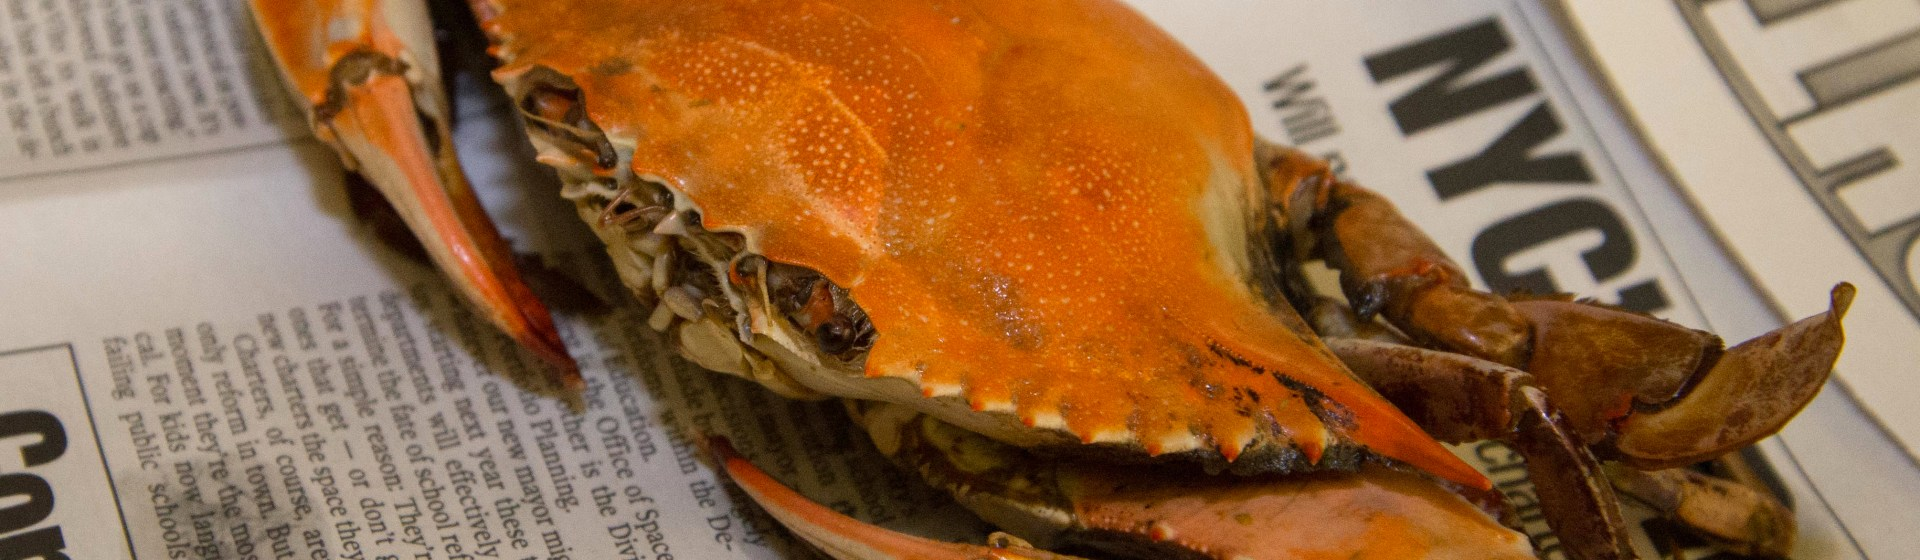 how to eat blue crab video